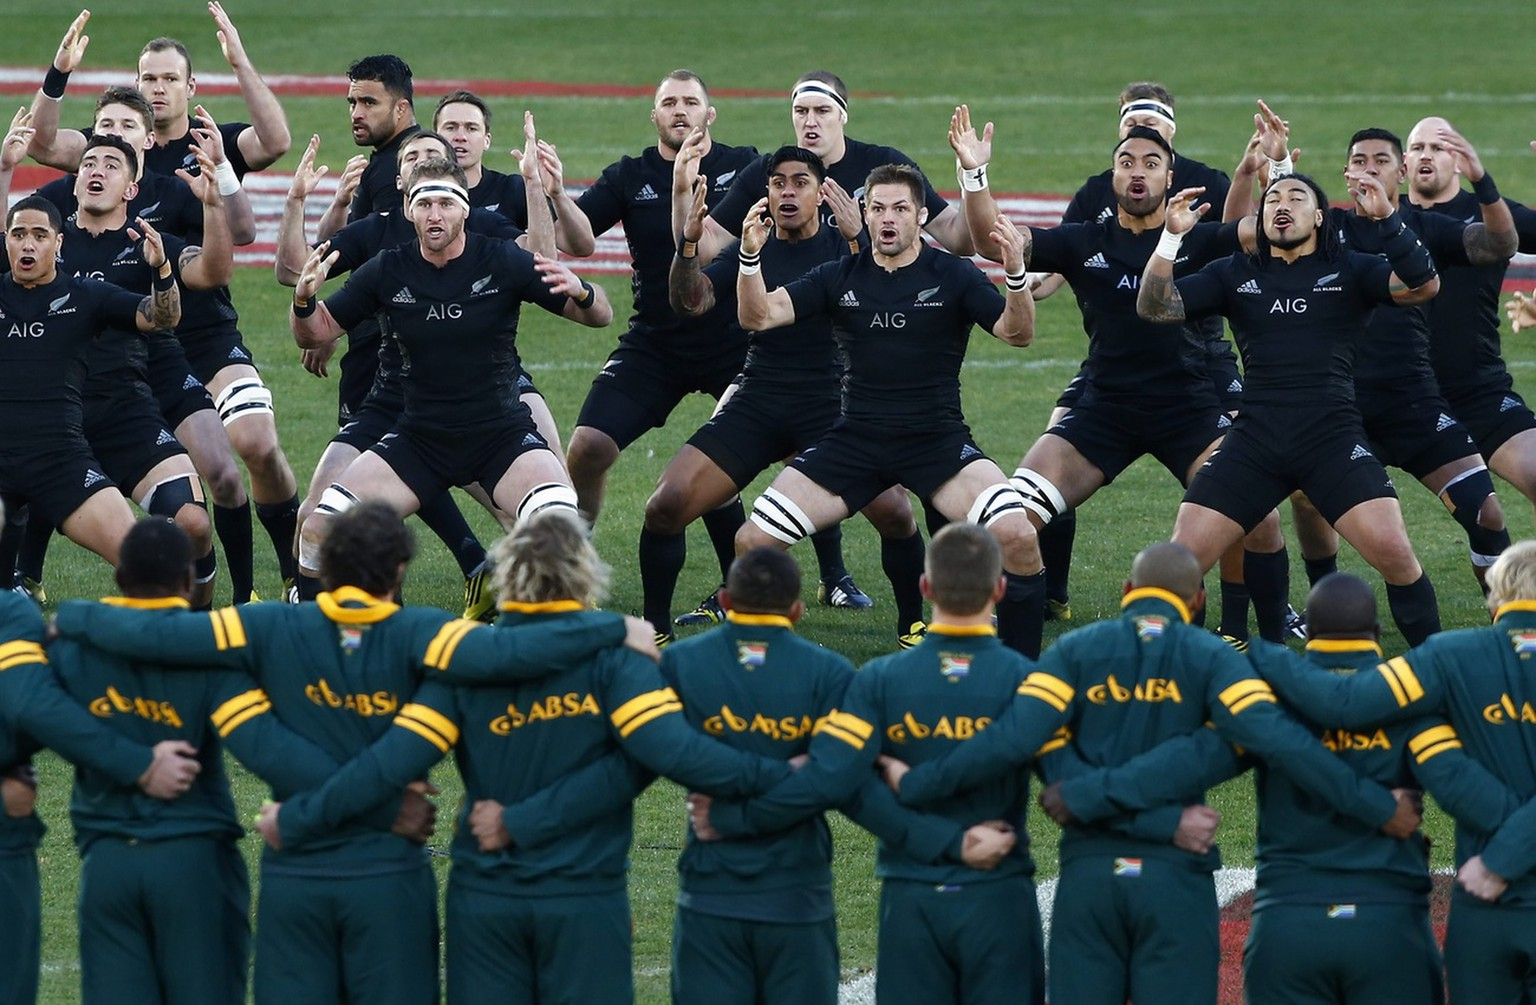 epa04860304 The All Blacks perform the Haka dance facing the Springboks ahead of the rugby test match between South Africa and New Zealand at Emirates Airlines Park in Johannesburg, South Africa 25 July 2015.  EPA/NIC BOTHMA